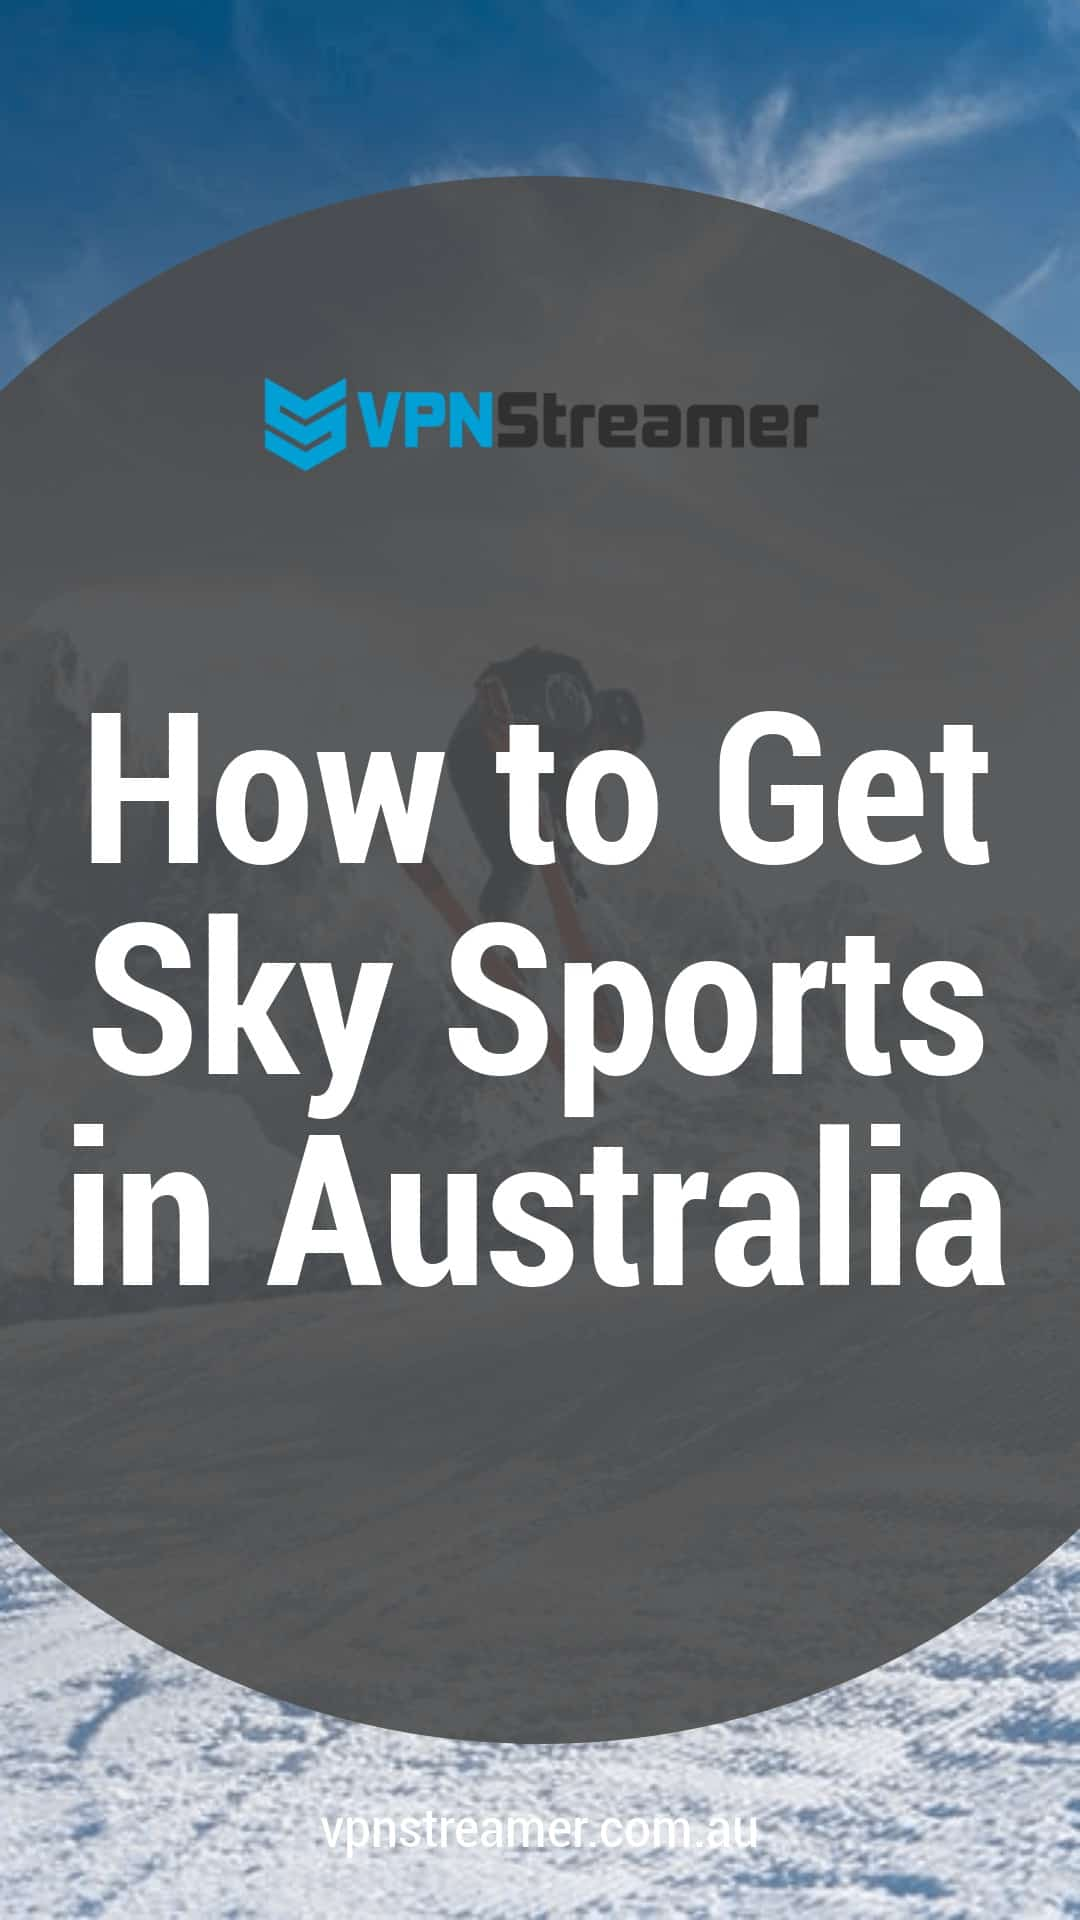 How to Get Sky Sports in Australia